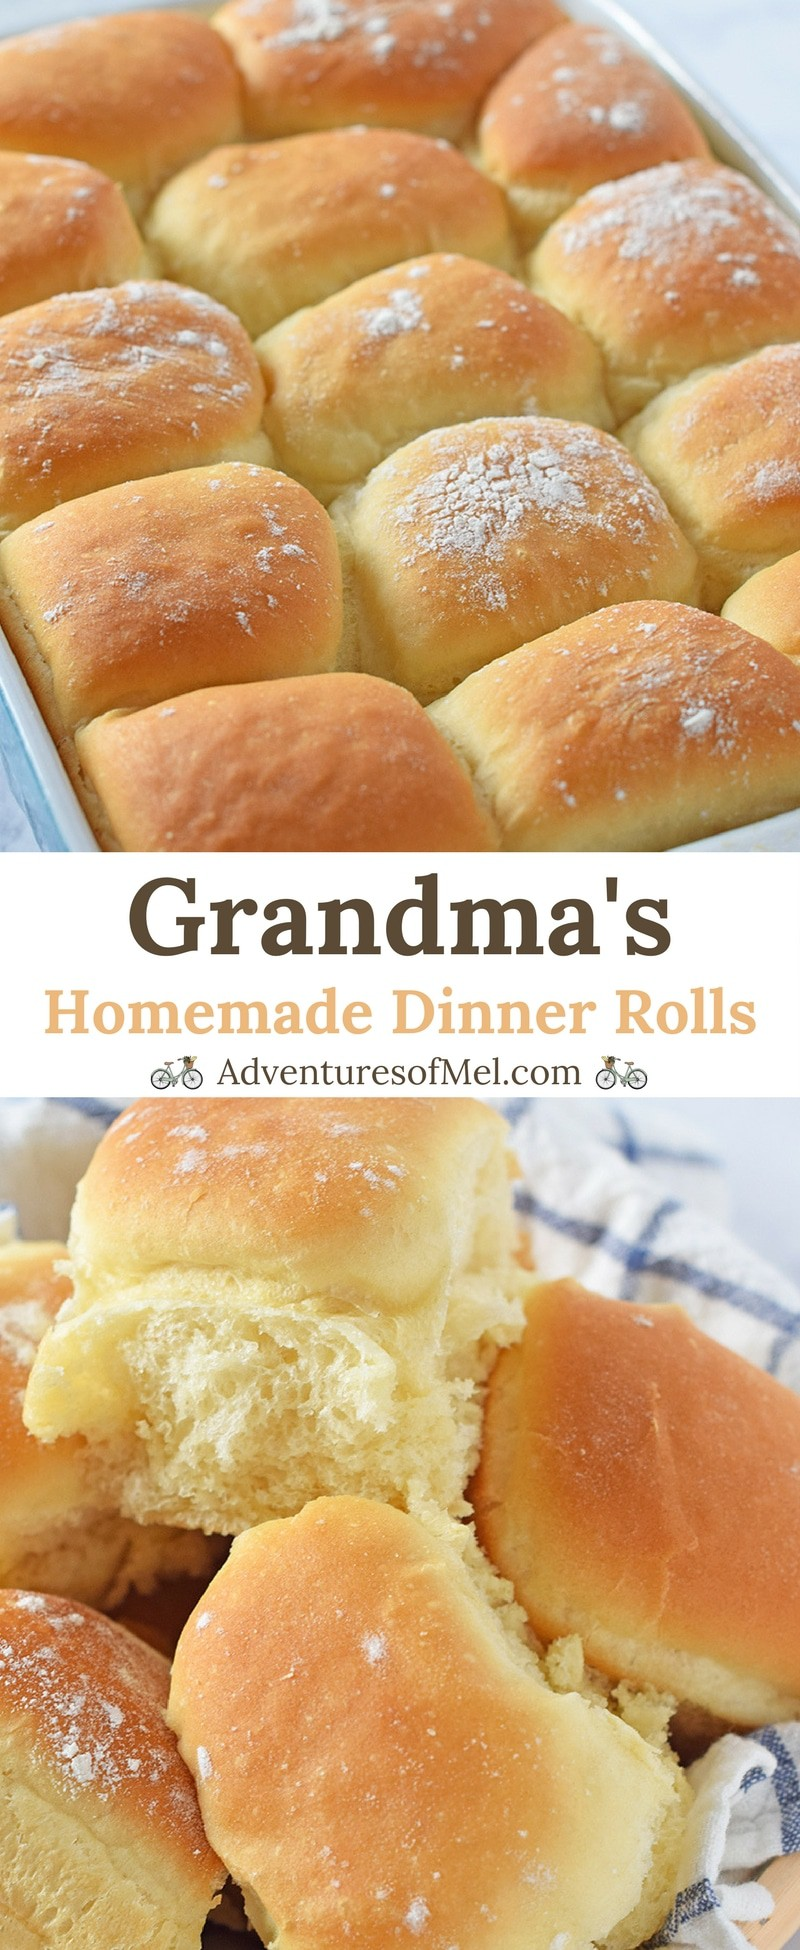 Grandma's homemade dinner rolls recipe